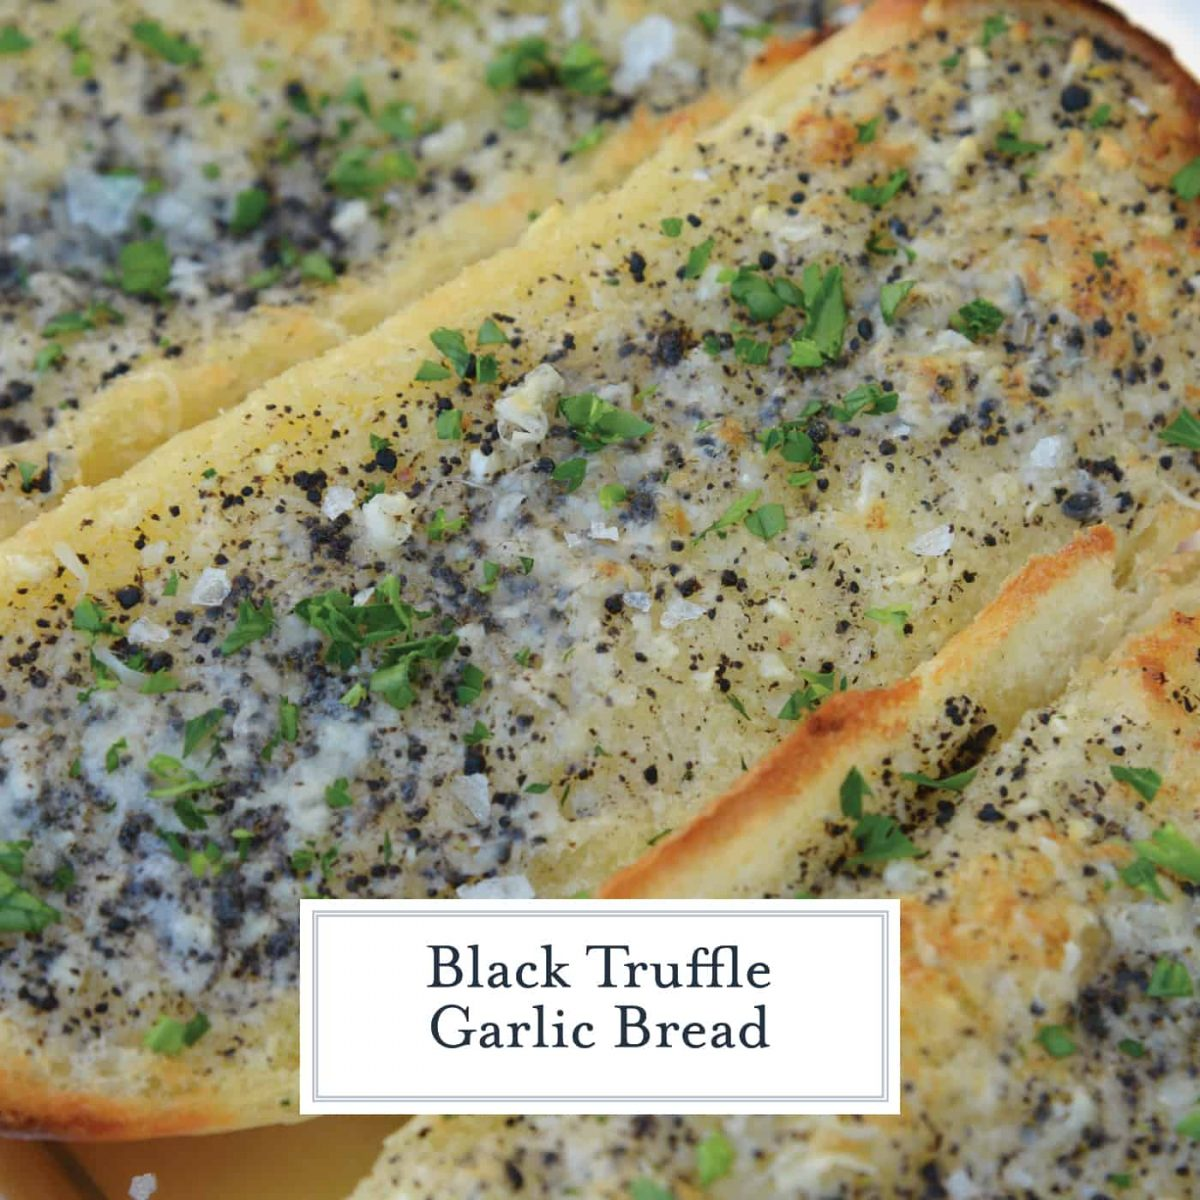 This Truffle Butter Garlic Bread is unlike any homemade garlic bread you've tasted. So delicious and made with just 3 ingredients! #trufflebutter #homemadegarlicbread www.savoryexperiments.com